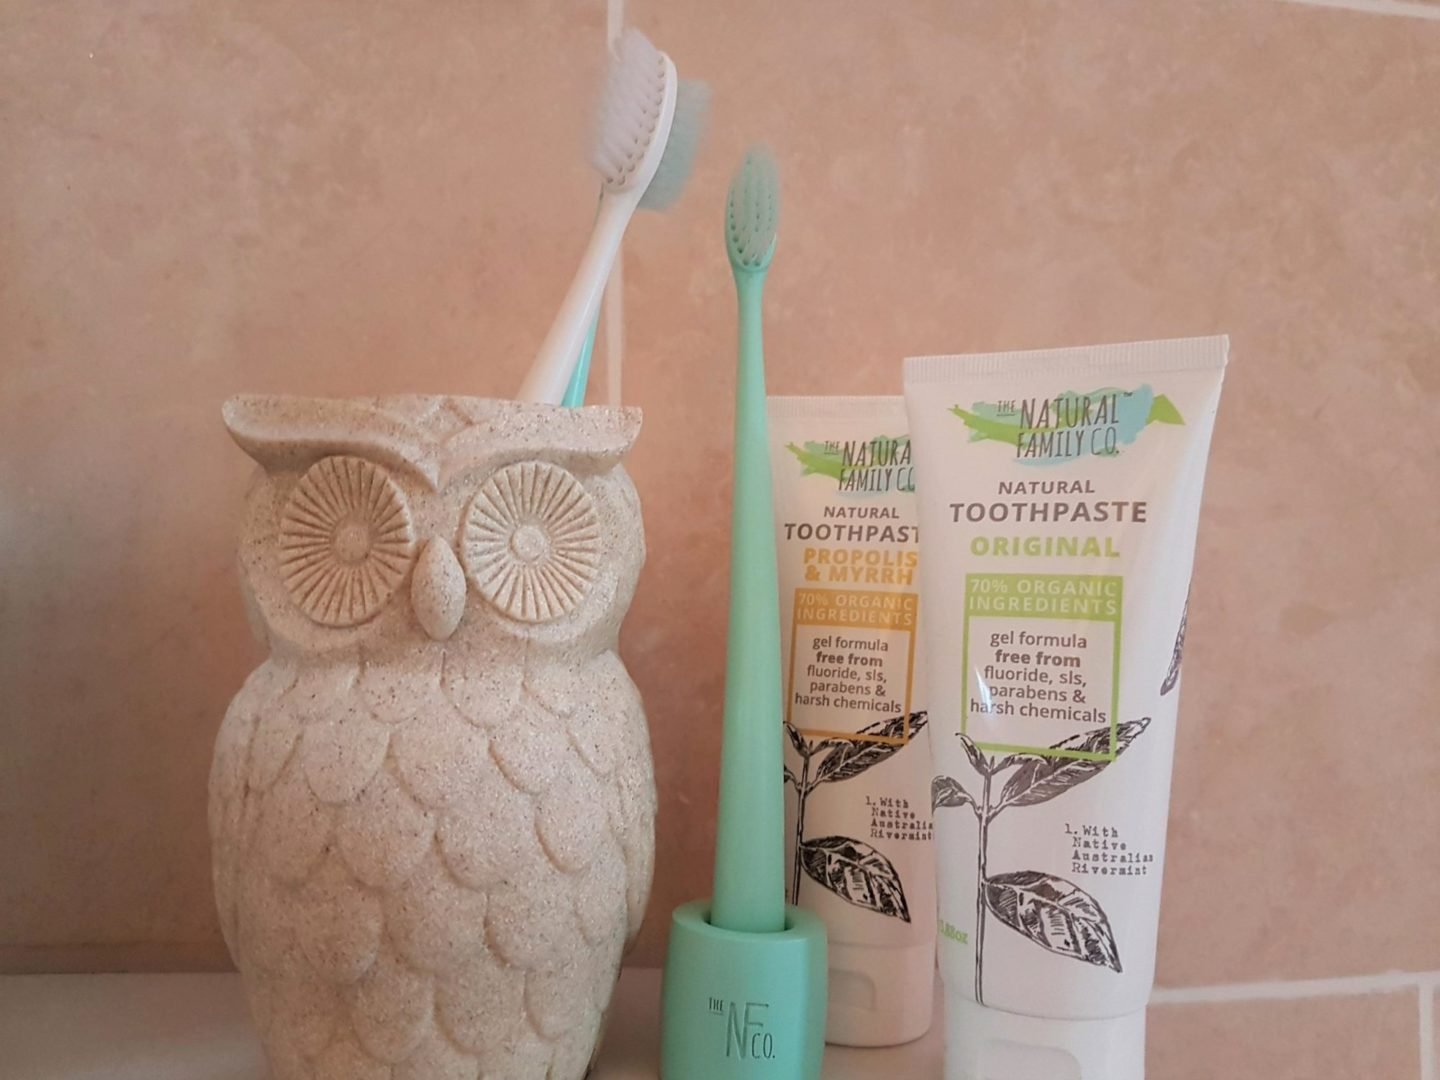 The Natural Family Co Toothpaste